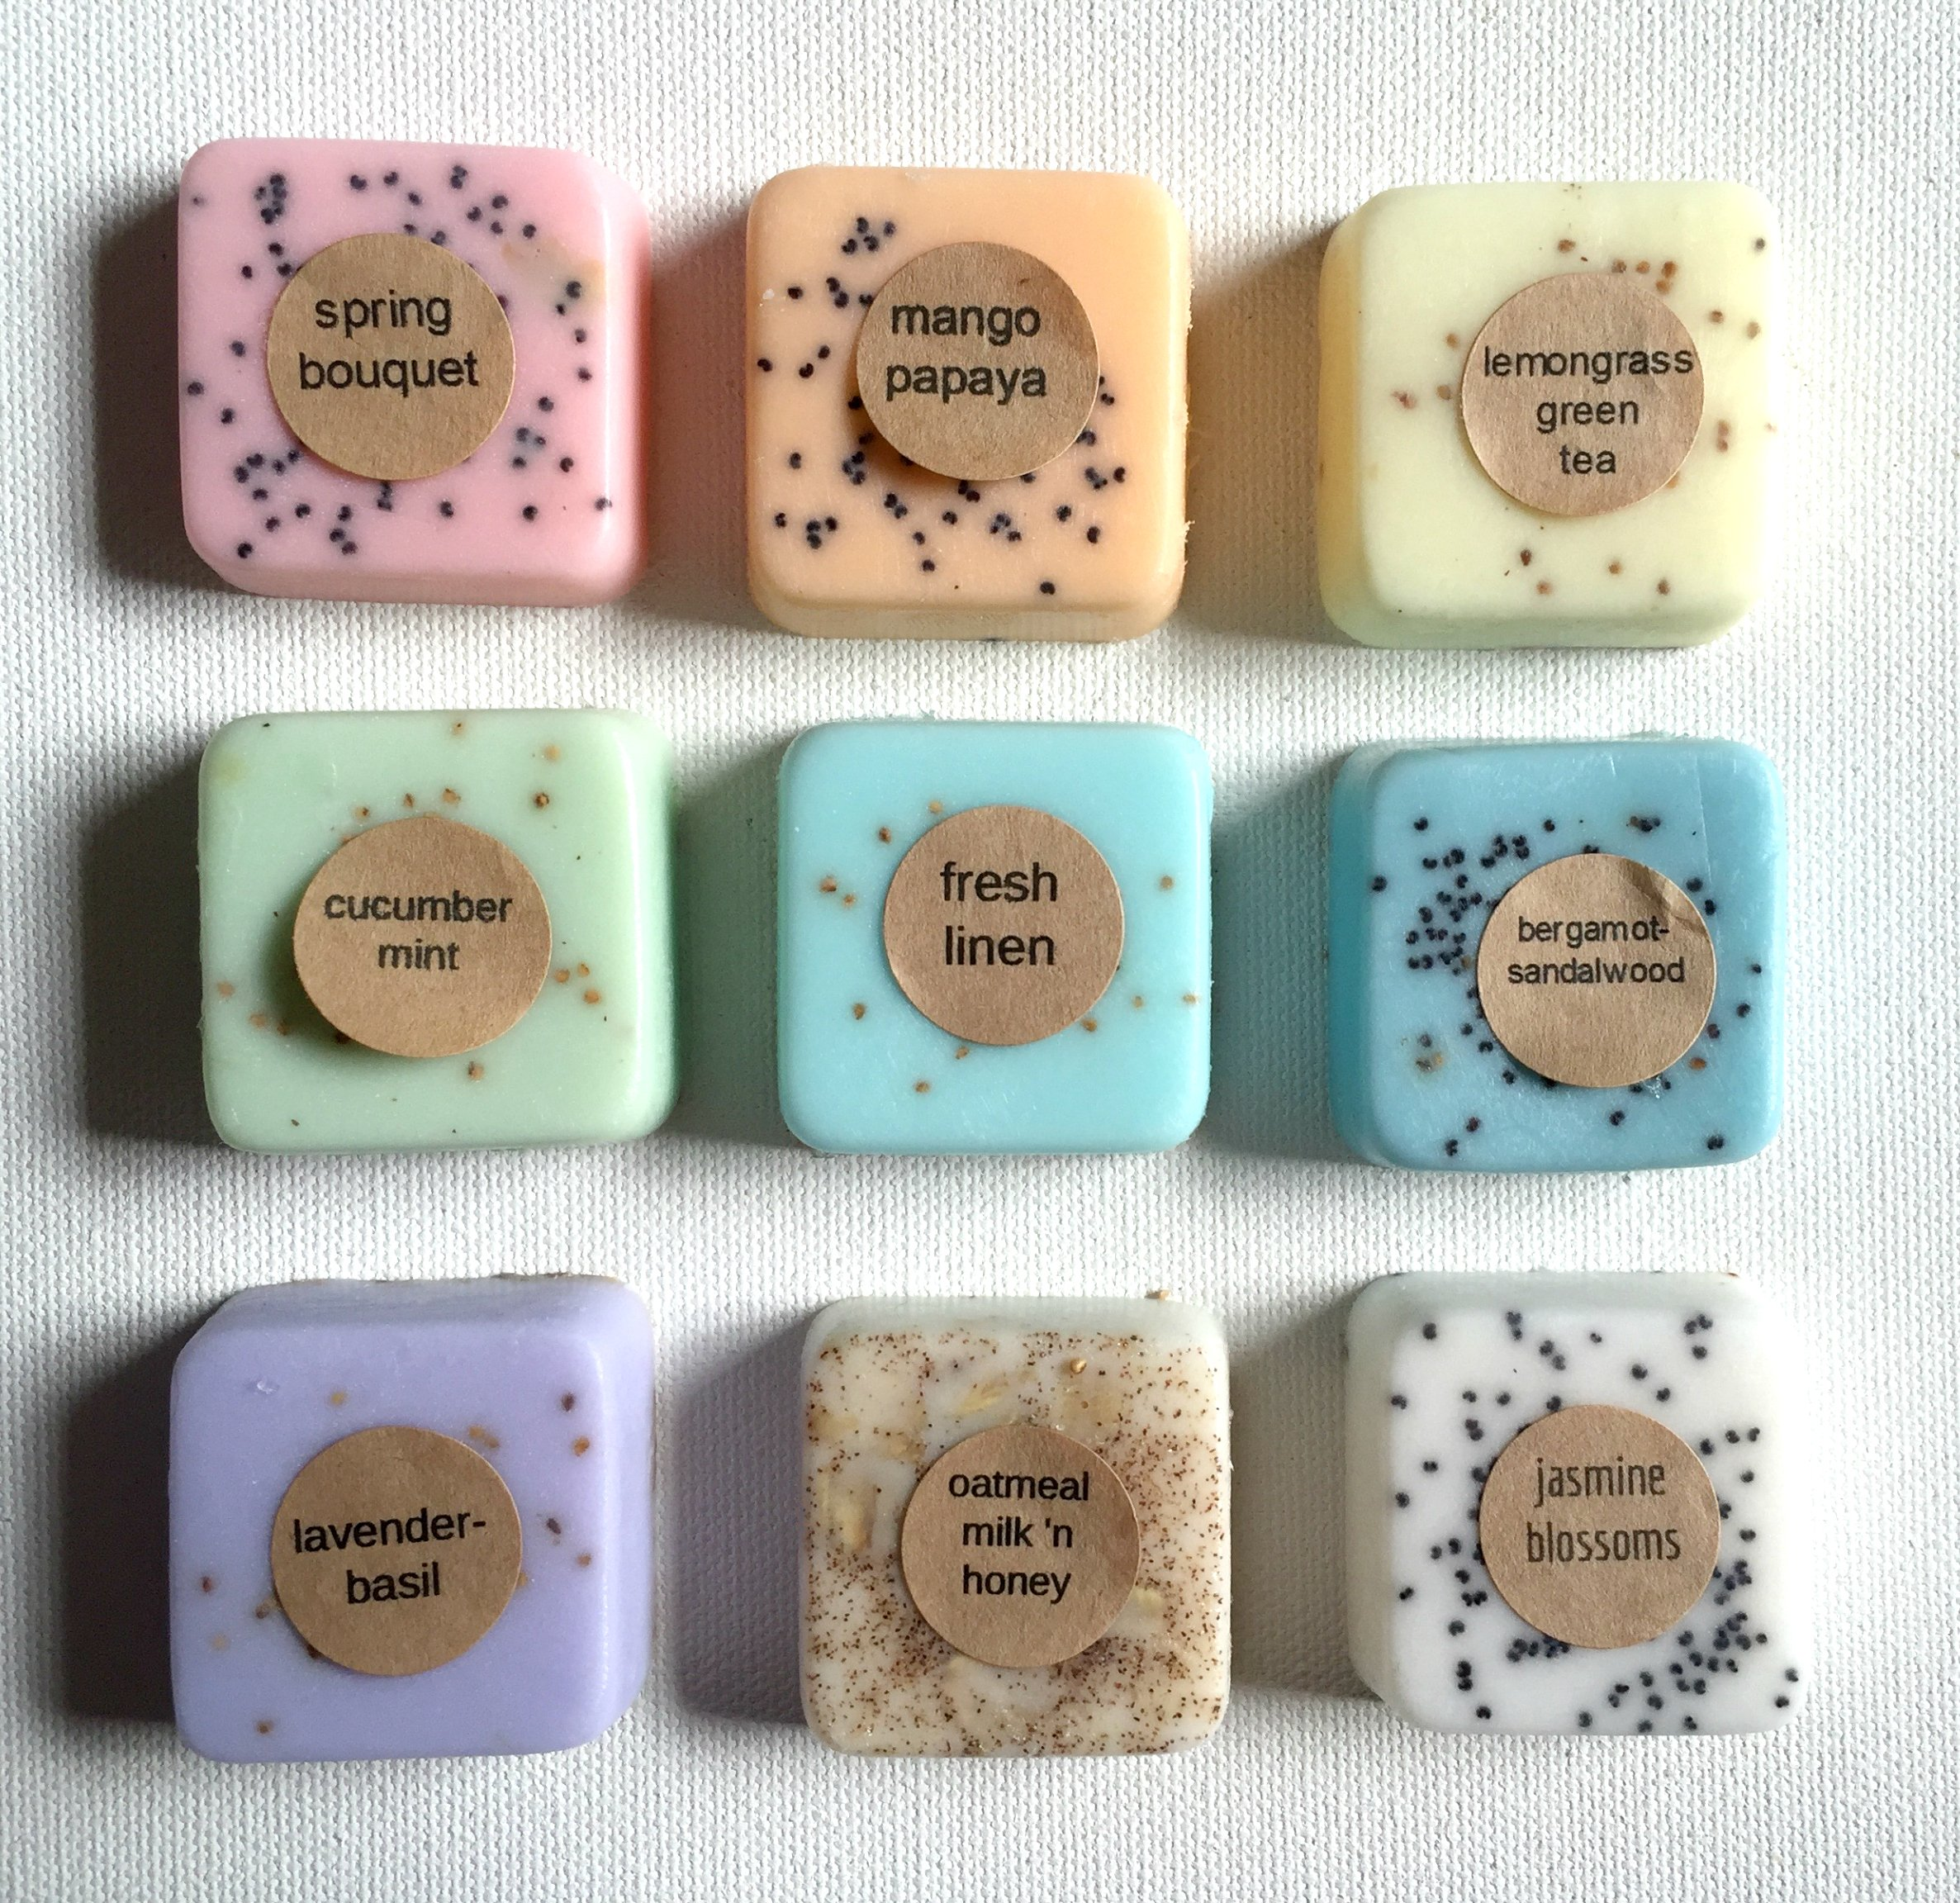 100 Wedding Favors: Soap Favors for Wedding Favors, Bridal Shower Favors, or Baby Shower Favors by kitschandfancy